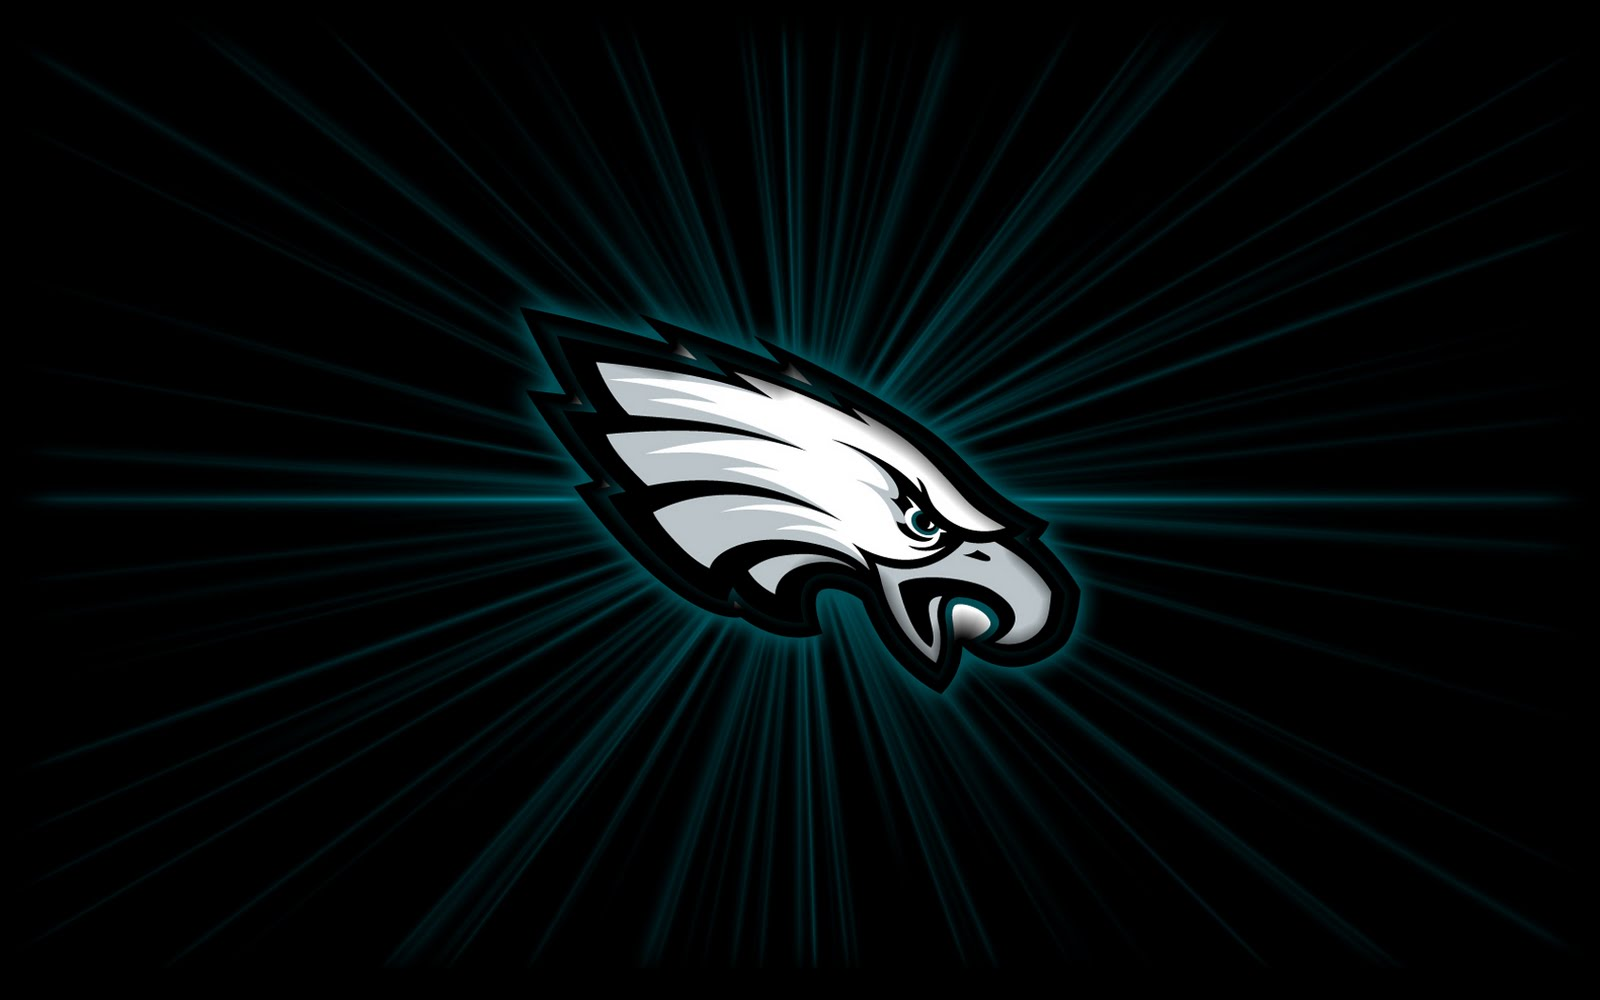 http://1.bp.blogspot.com/_SPY5-z18DBU/TTo_6qHupdI/AAAAAAAAAm0/nU0Q_CZ8GaQ/s1600/philadelphia_eagles_star_burst_wallpaper_1680x1050.jpeg